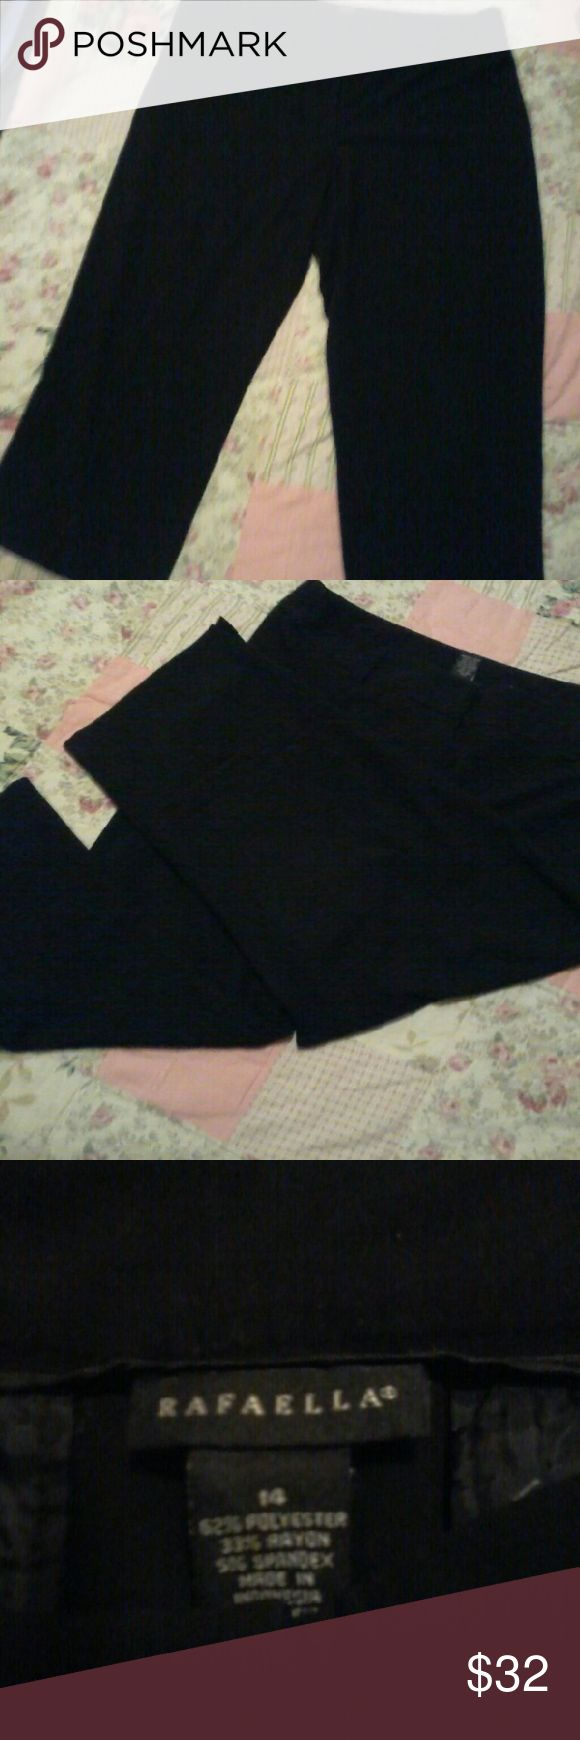 Rafaella black trouser capris sz14 Rafaella, black, sz14, trouser capris, excellent condition, no flaws Rafaella Pants Capris